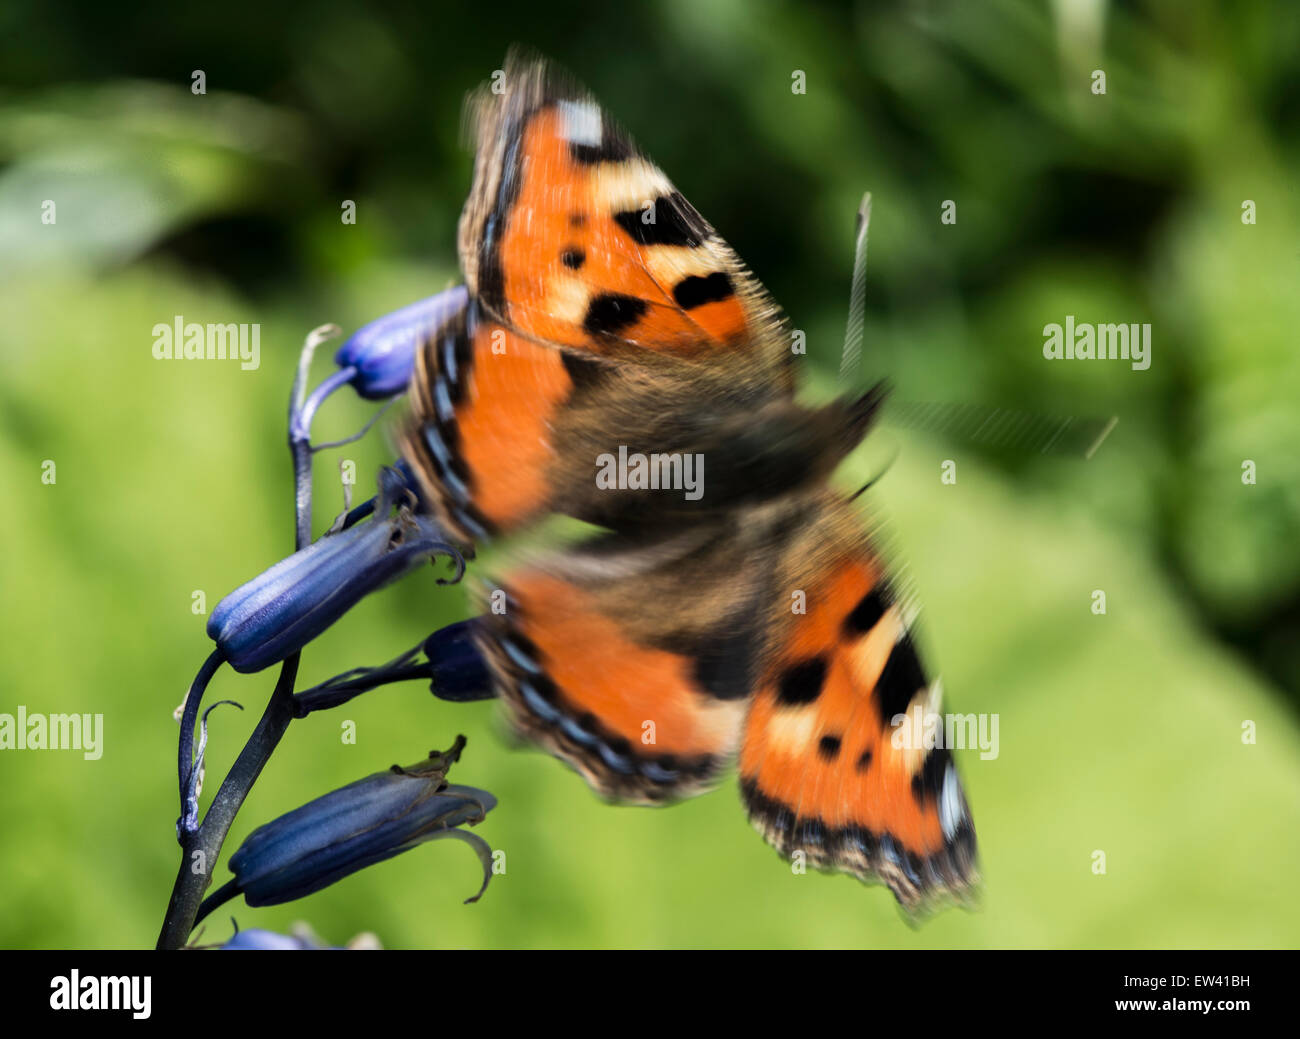 Nature; Tortoiseshell Butterfly in flight - Stock Image